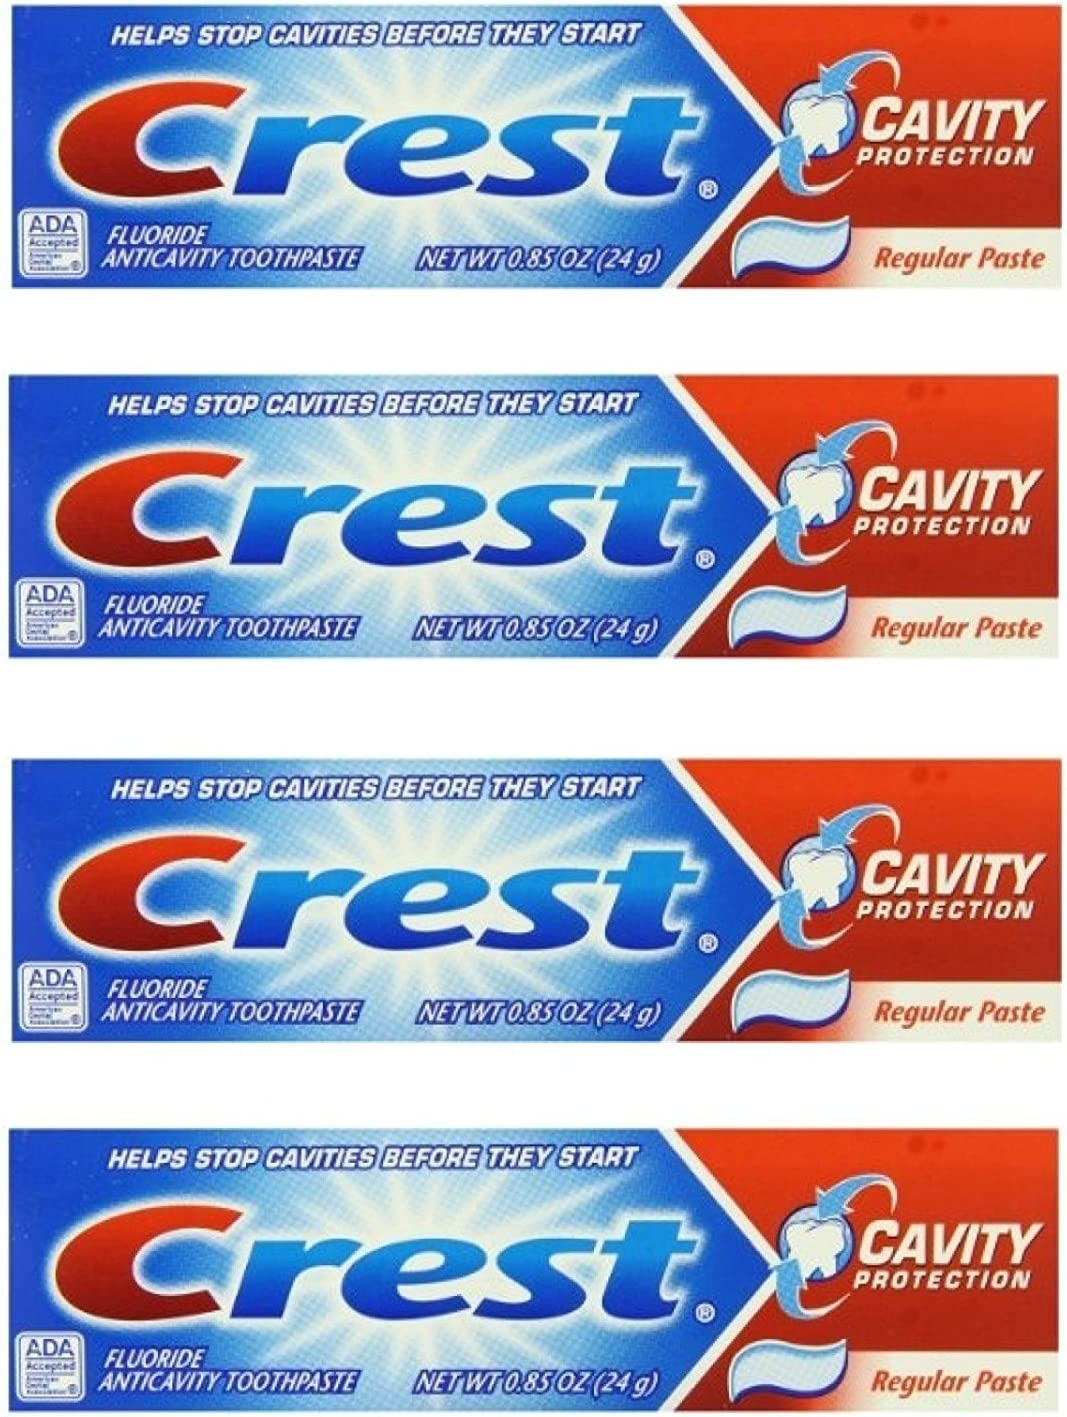 Crest Cavity Protection Fluoride Anticavity Toothpaste Regular Paste 0.85 oz Travel Size (Pack of 4)